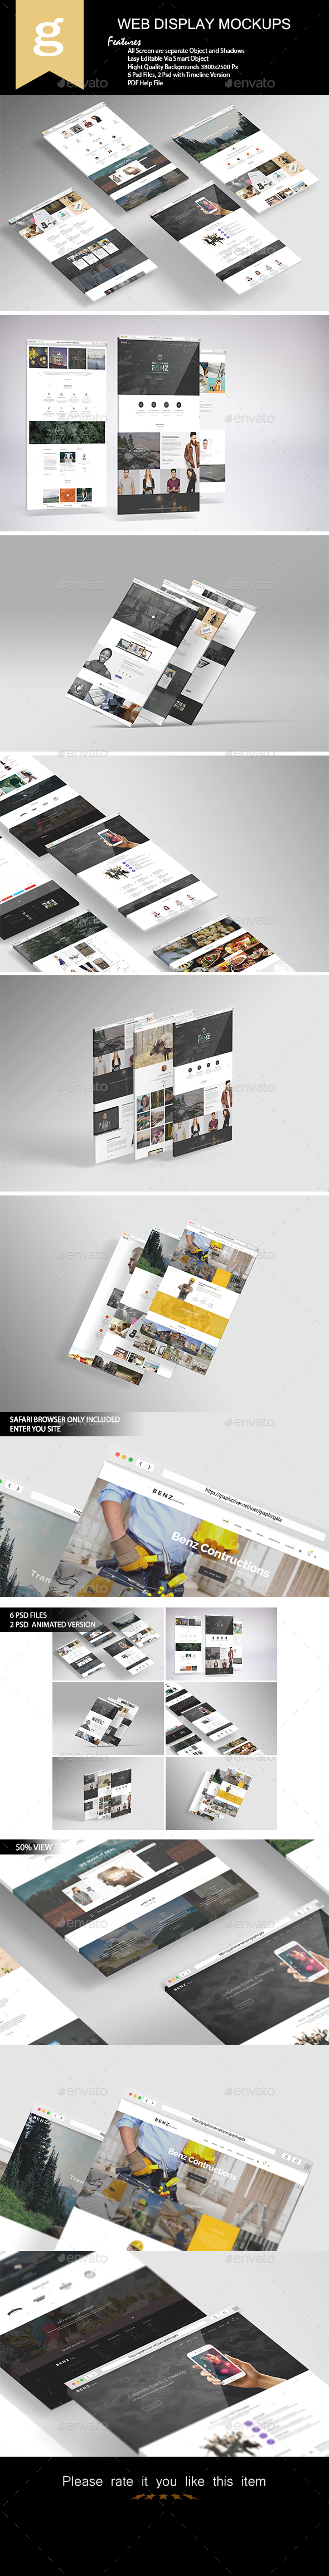 3D Web Display Mock-Up - Displays Product Mock-Ups